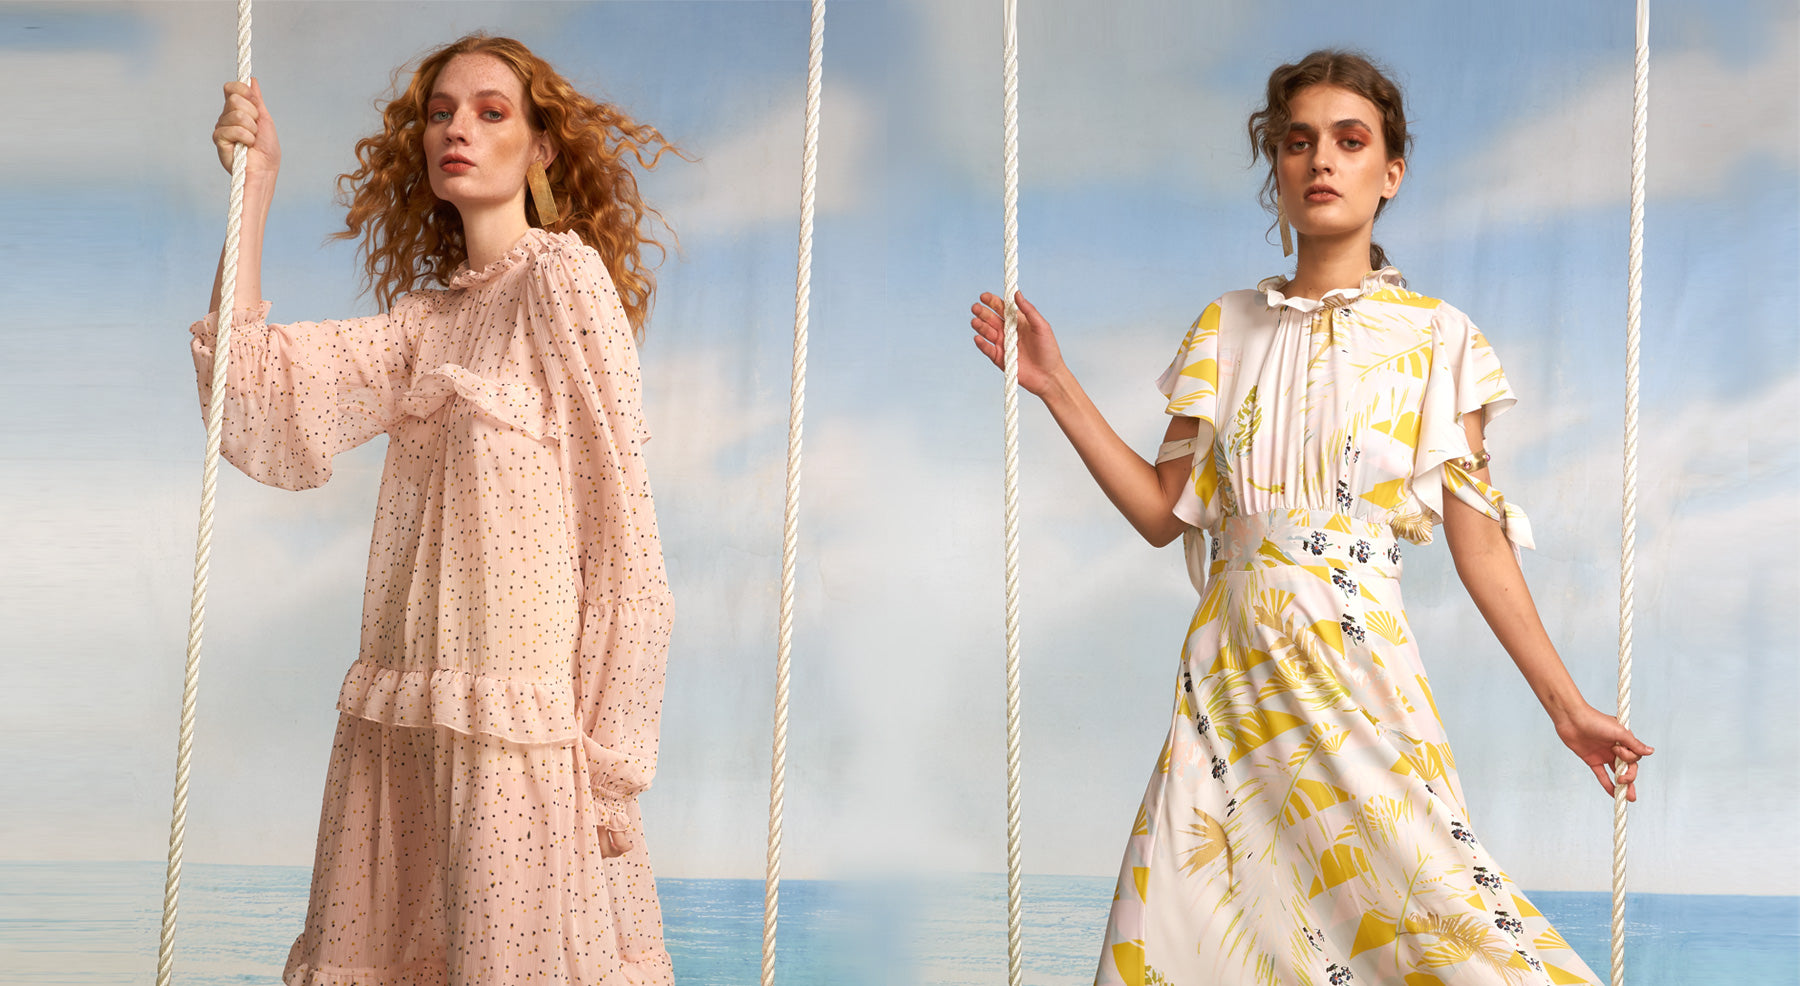 Close view of models on swings featuring the Delphine flocked dot chiffon dress and the Talia printed maxi dress.